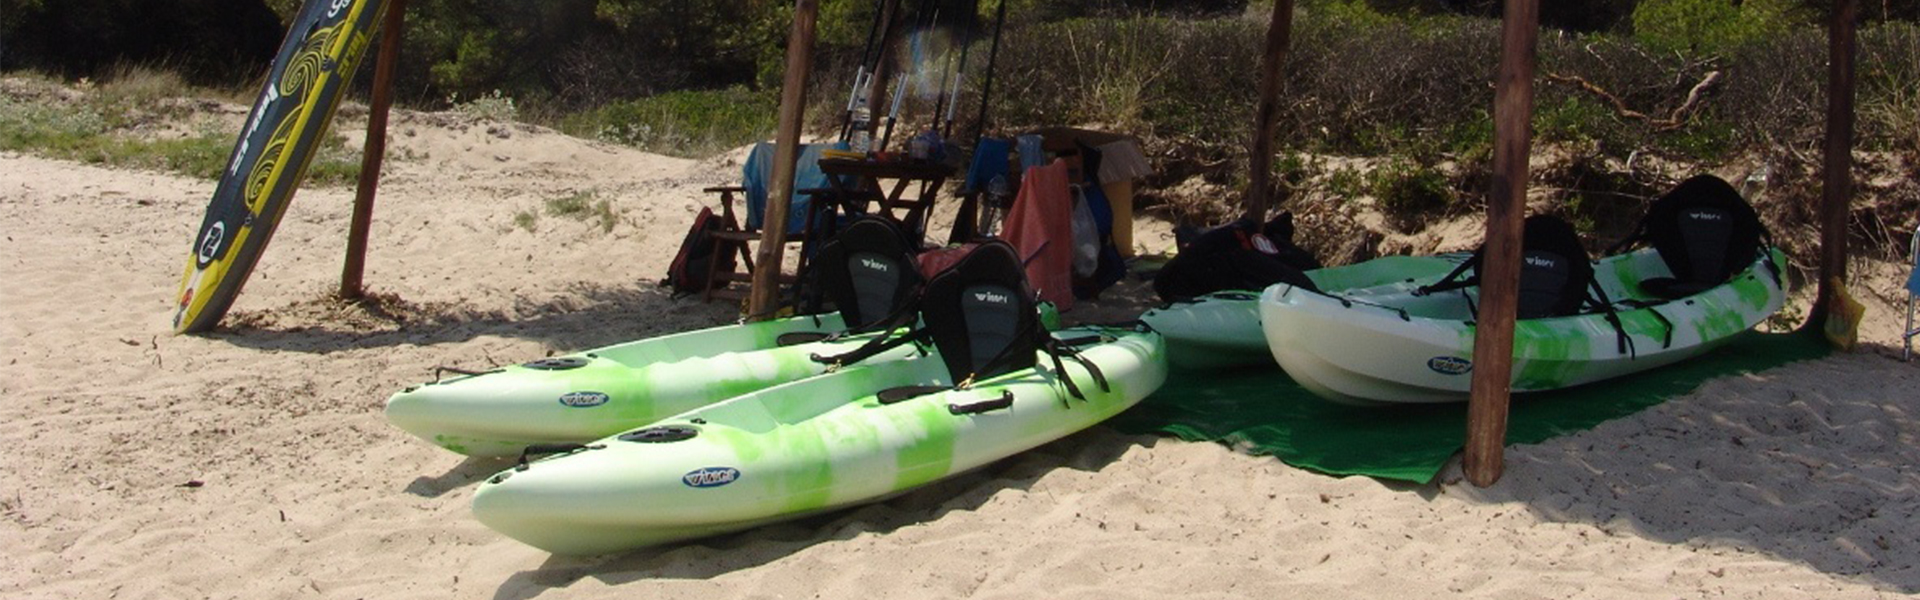 Kayak Sup Explorers - Tours Halkidiki 5